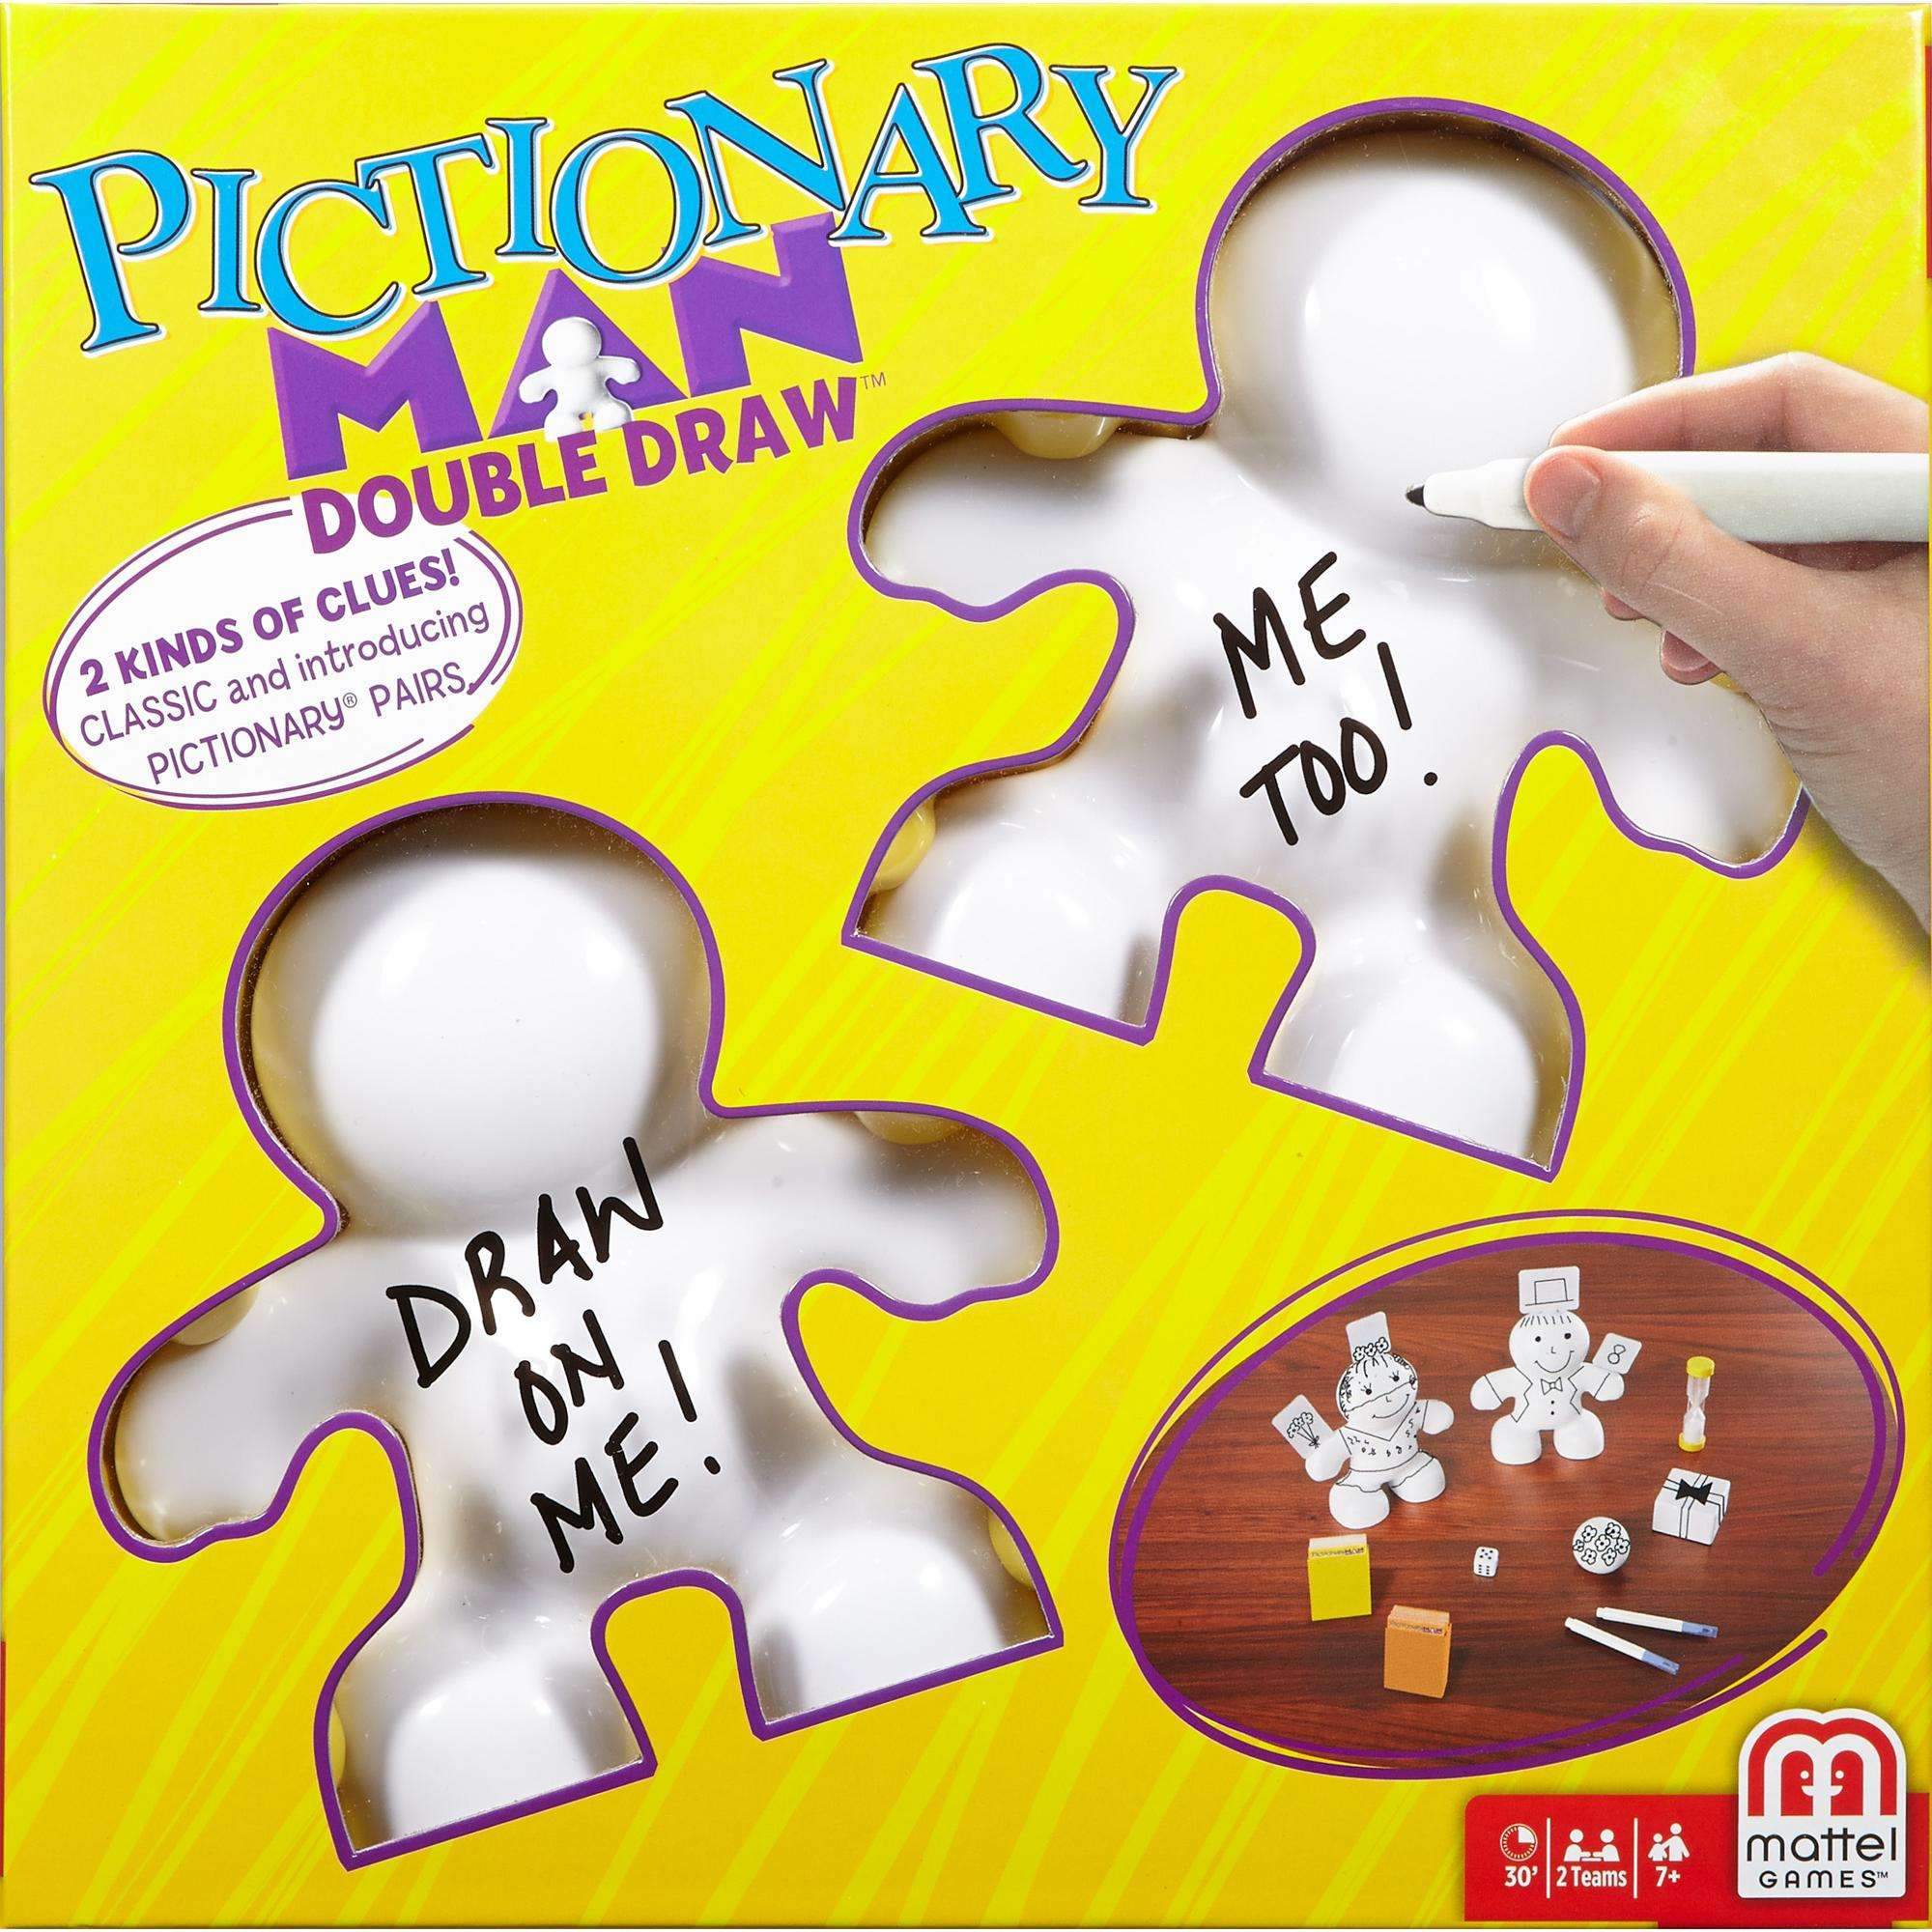 Pictionary Man Double Draw Game